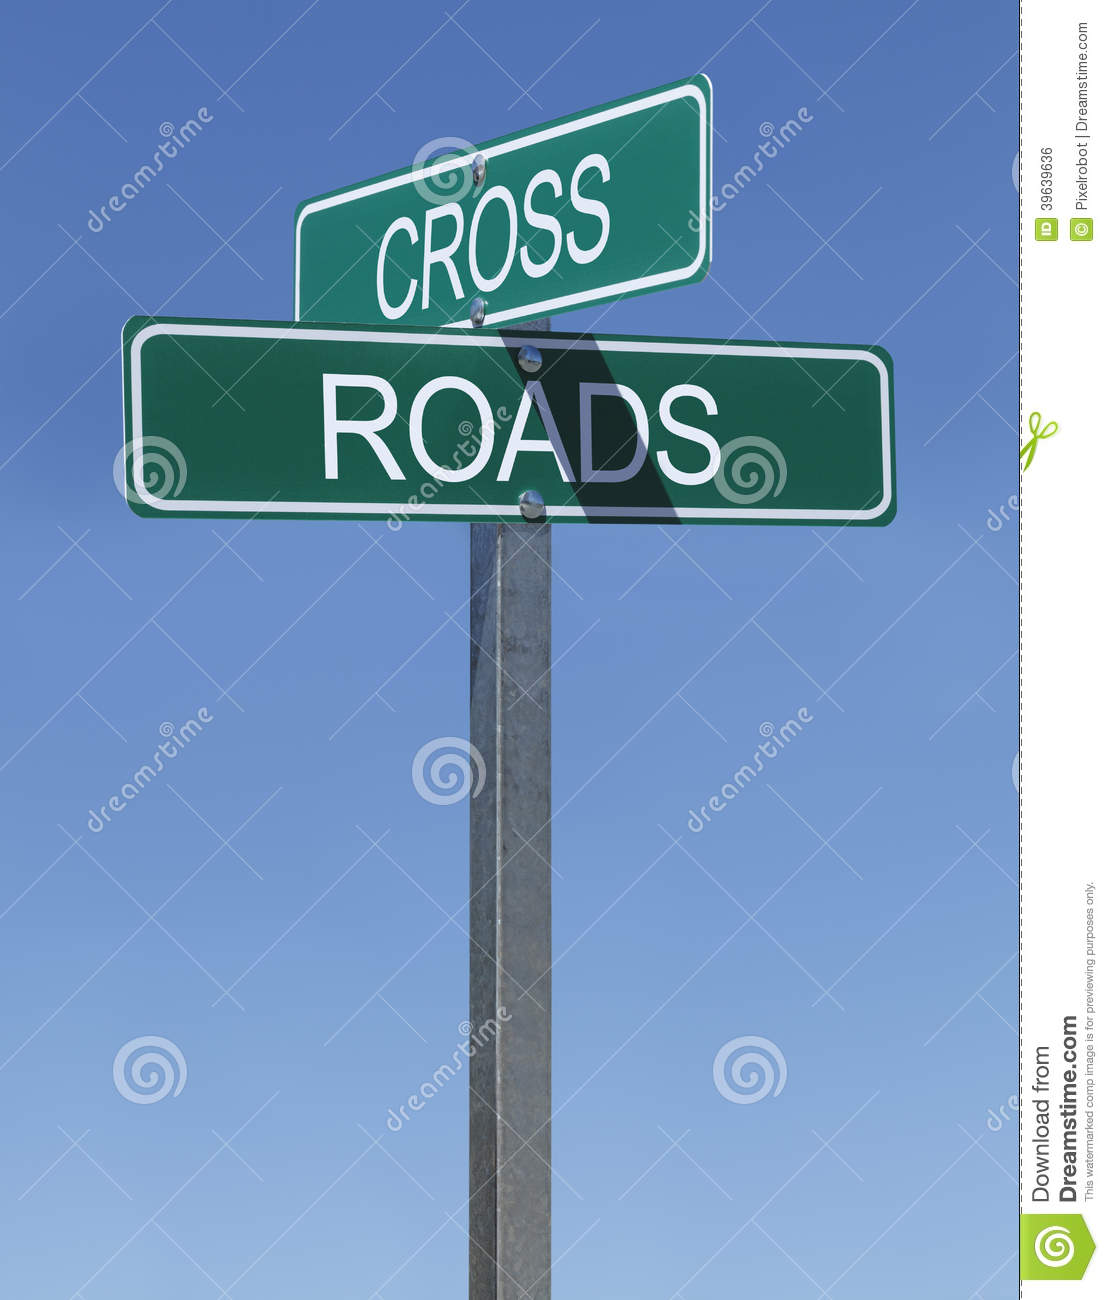 Cross Roads Sign Stock Photo  Image 39639636. Pep Rally Signs. Common Health Safety Signs. Alignment Signs. Writing Chinese Signs Of Stroke. Dimensional Signs. Cover Page High School Signs. Failure Signs Of Stroke. Epds Signs